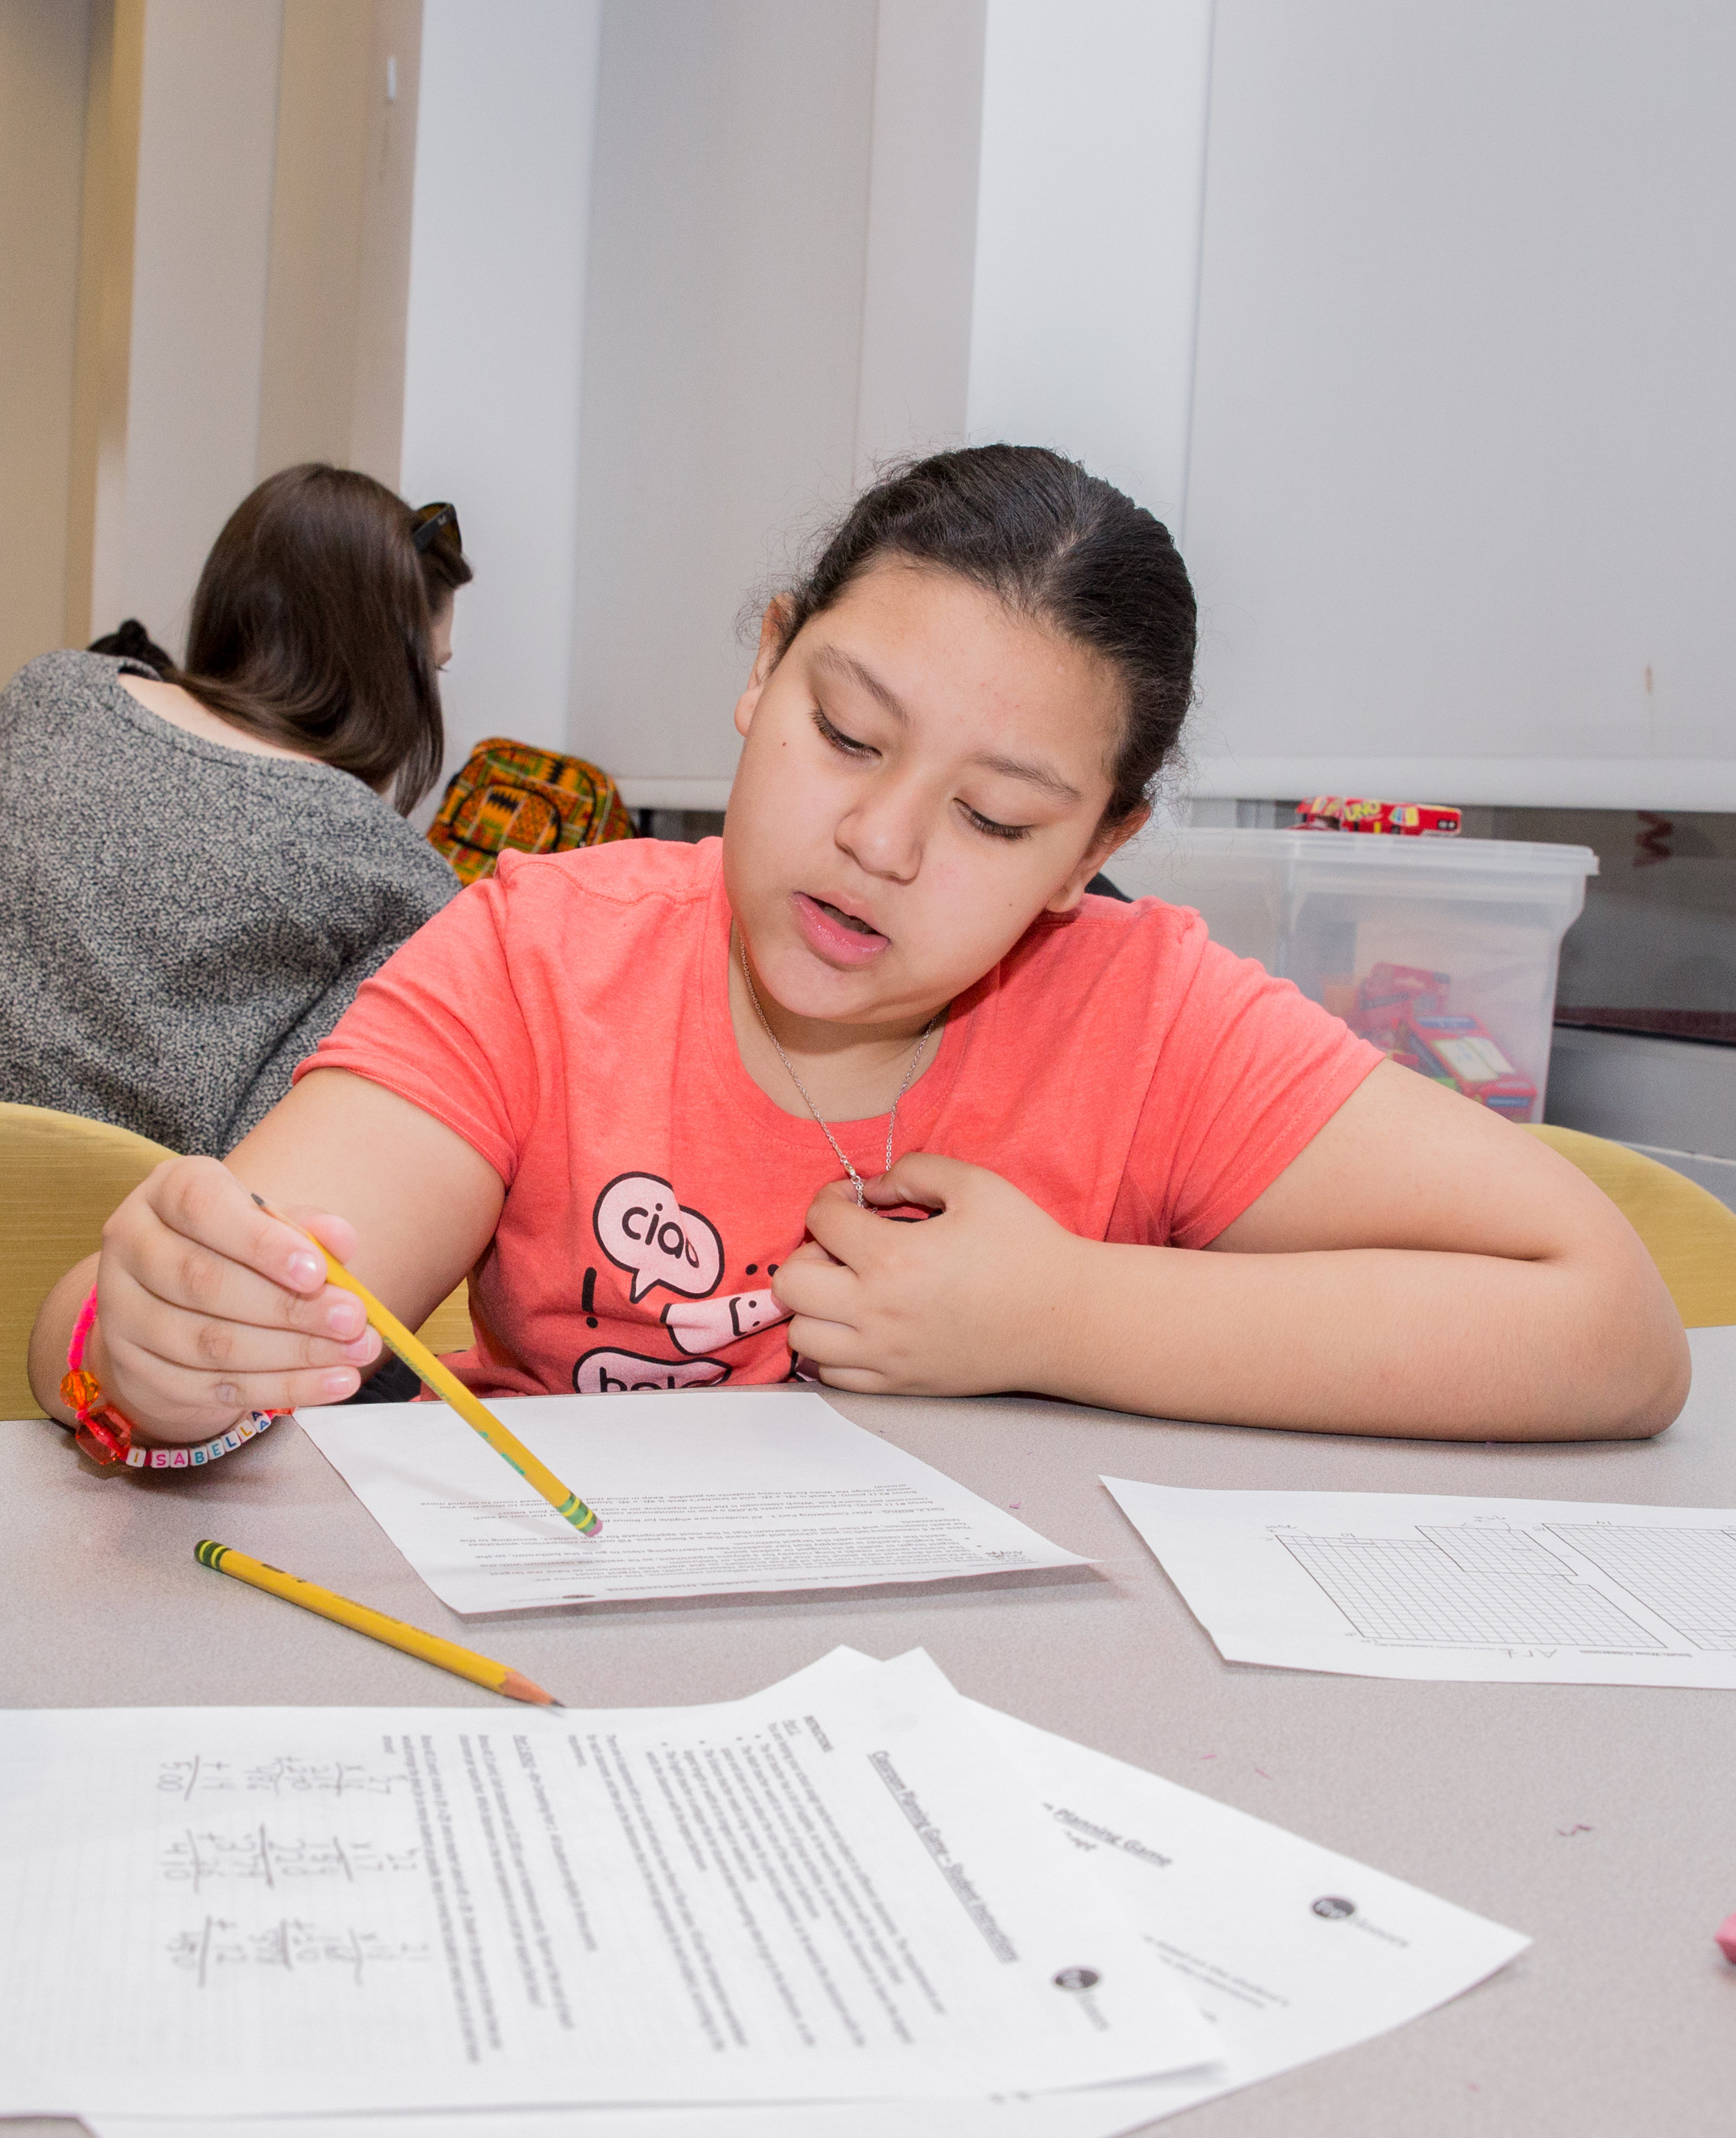 Why We're Different - Besides being free, our program is different from others in various ways. Rather than just homework help, our unique curriculum is designed to pinpoint and strengthen each student's problem areas.Learn More